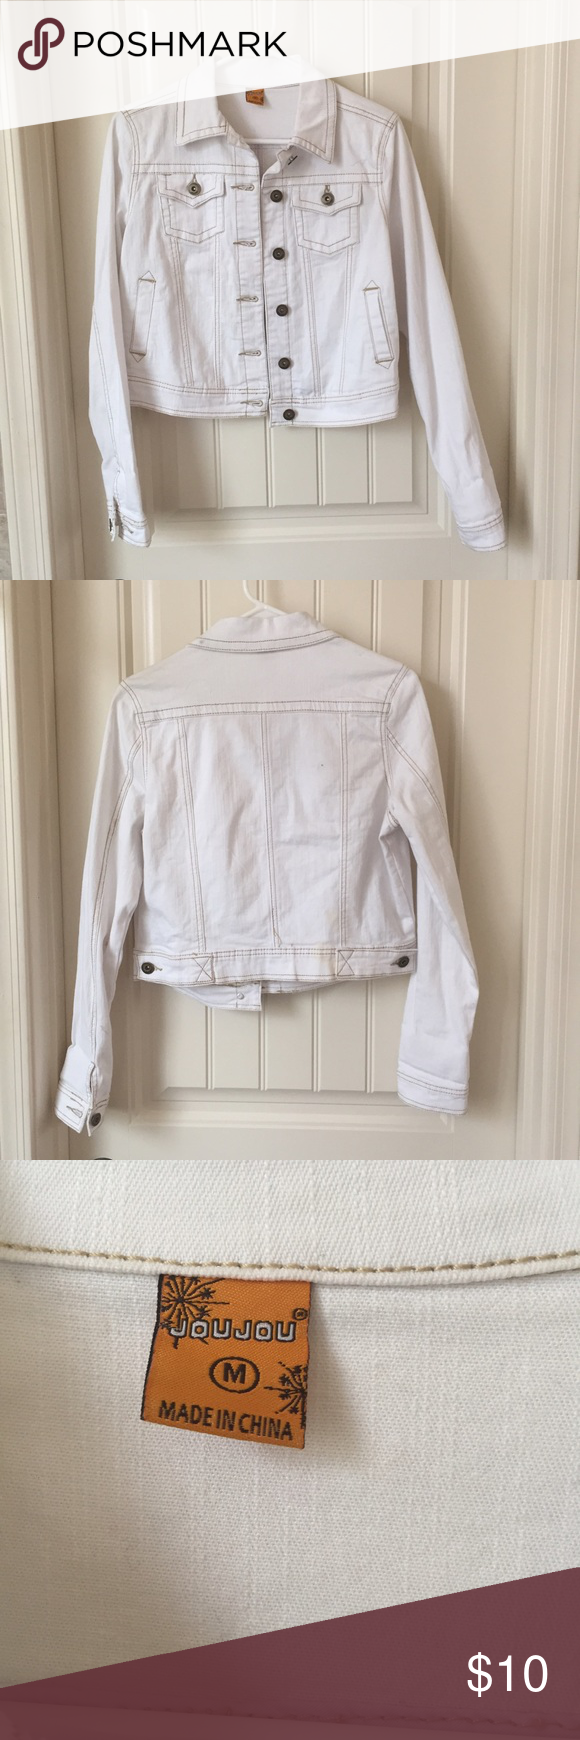 Women's jean jacket Never worn white jean jacket. In excellent condition with small stain on the bottom of the back as seen in the pictures. It's hardly noticeable and I almost missed it when I was taking pictures. Super cute I just never wear it. Jou Jou Jackets & Coats Jean Jackets